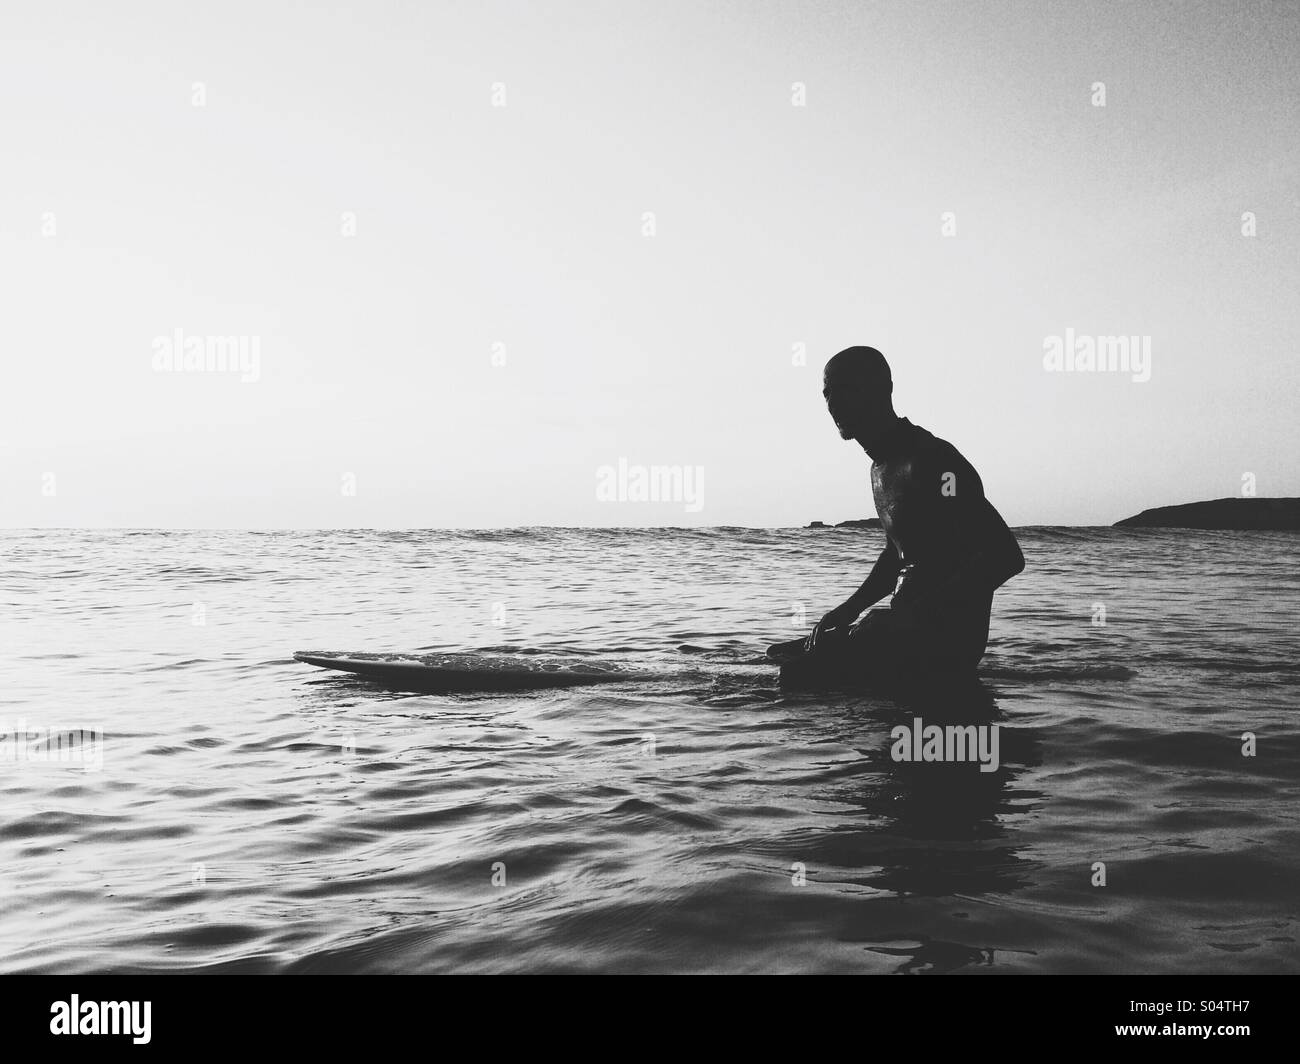 Surfer on surfboard waiting for waves. - Stock Image